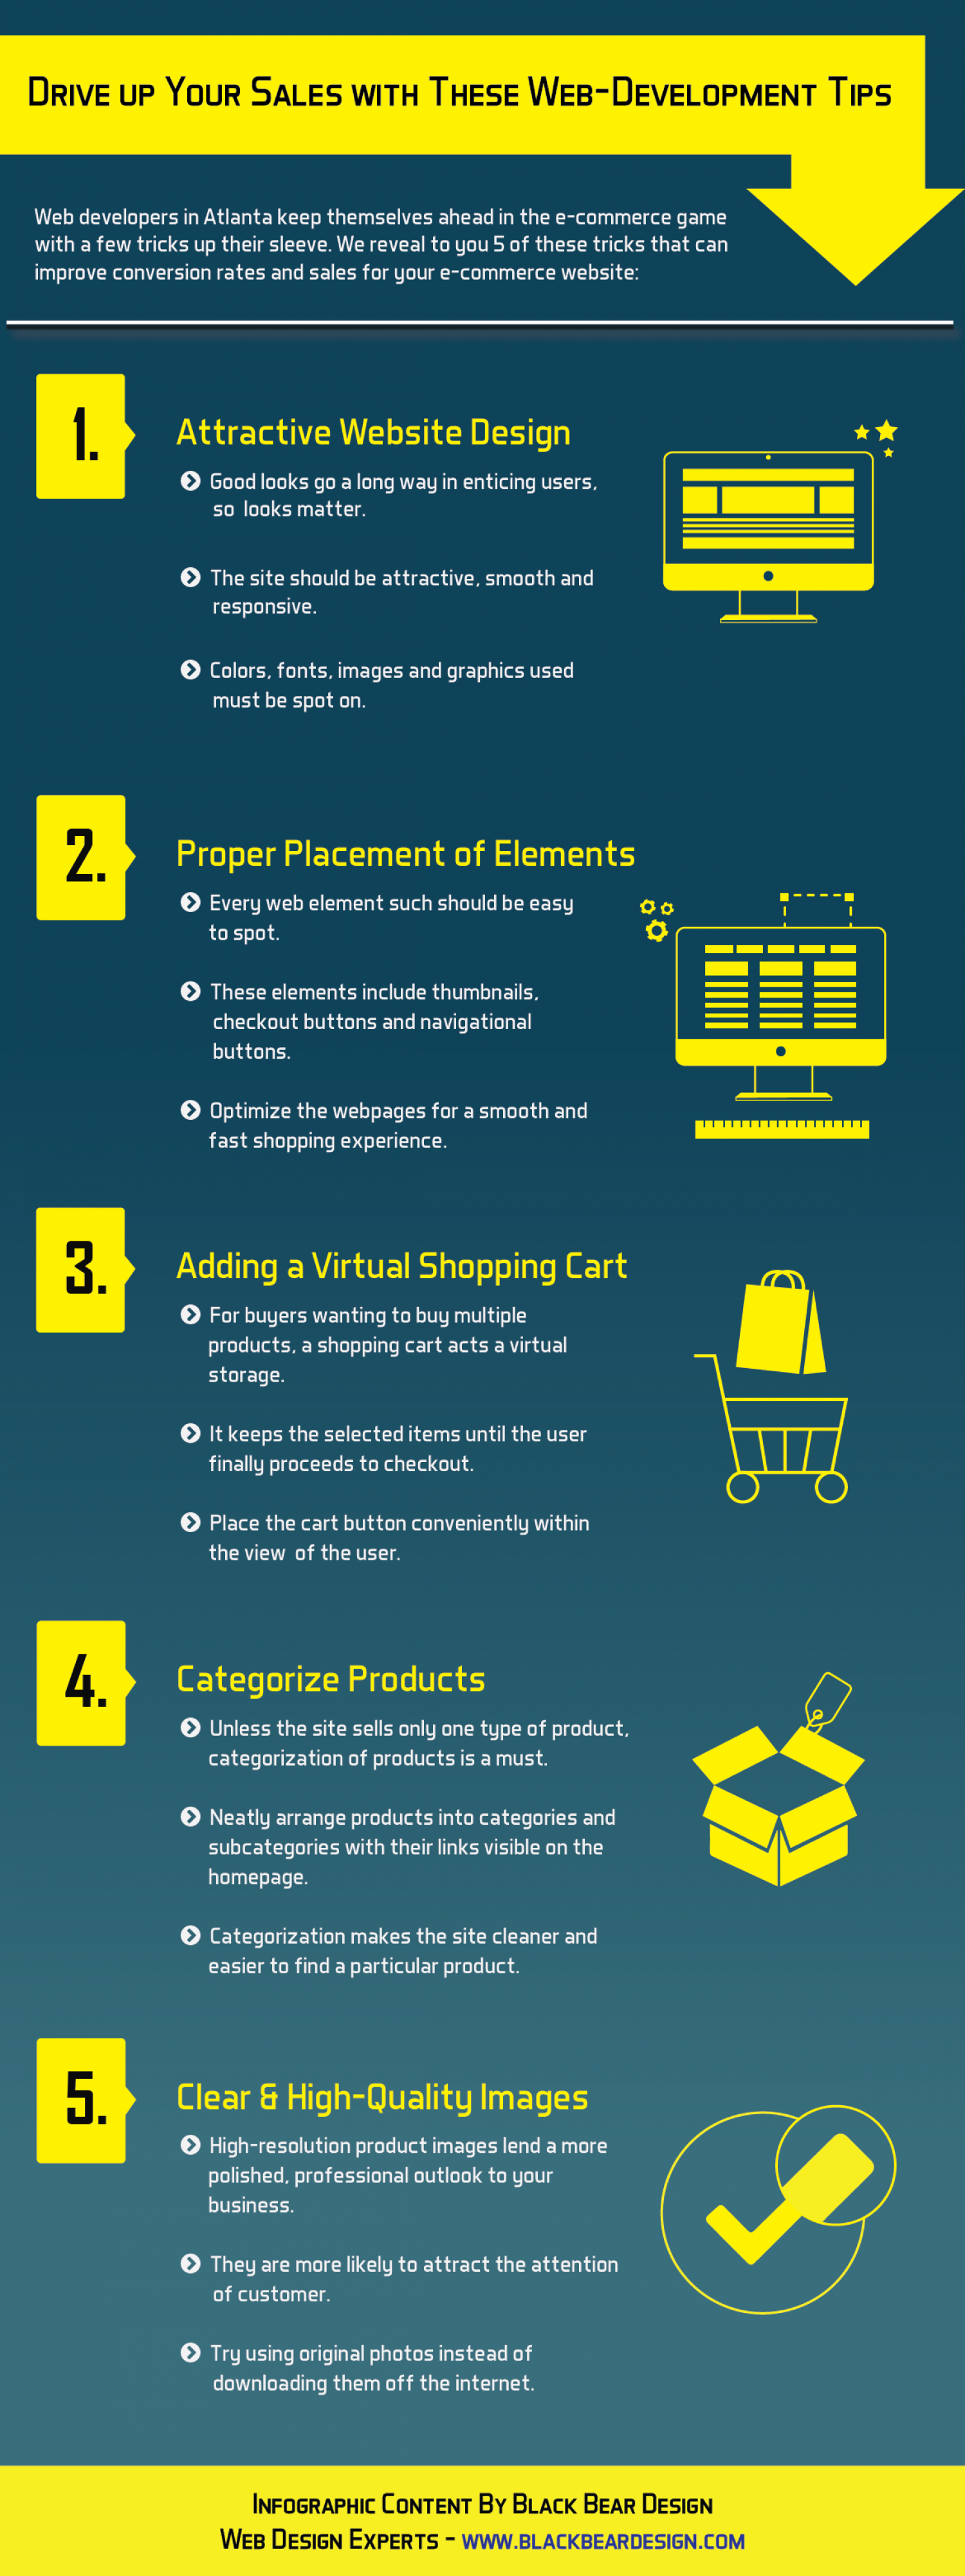 Web Development Tips to Drive Up Your Sales Infographic